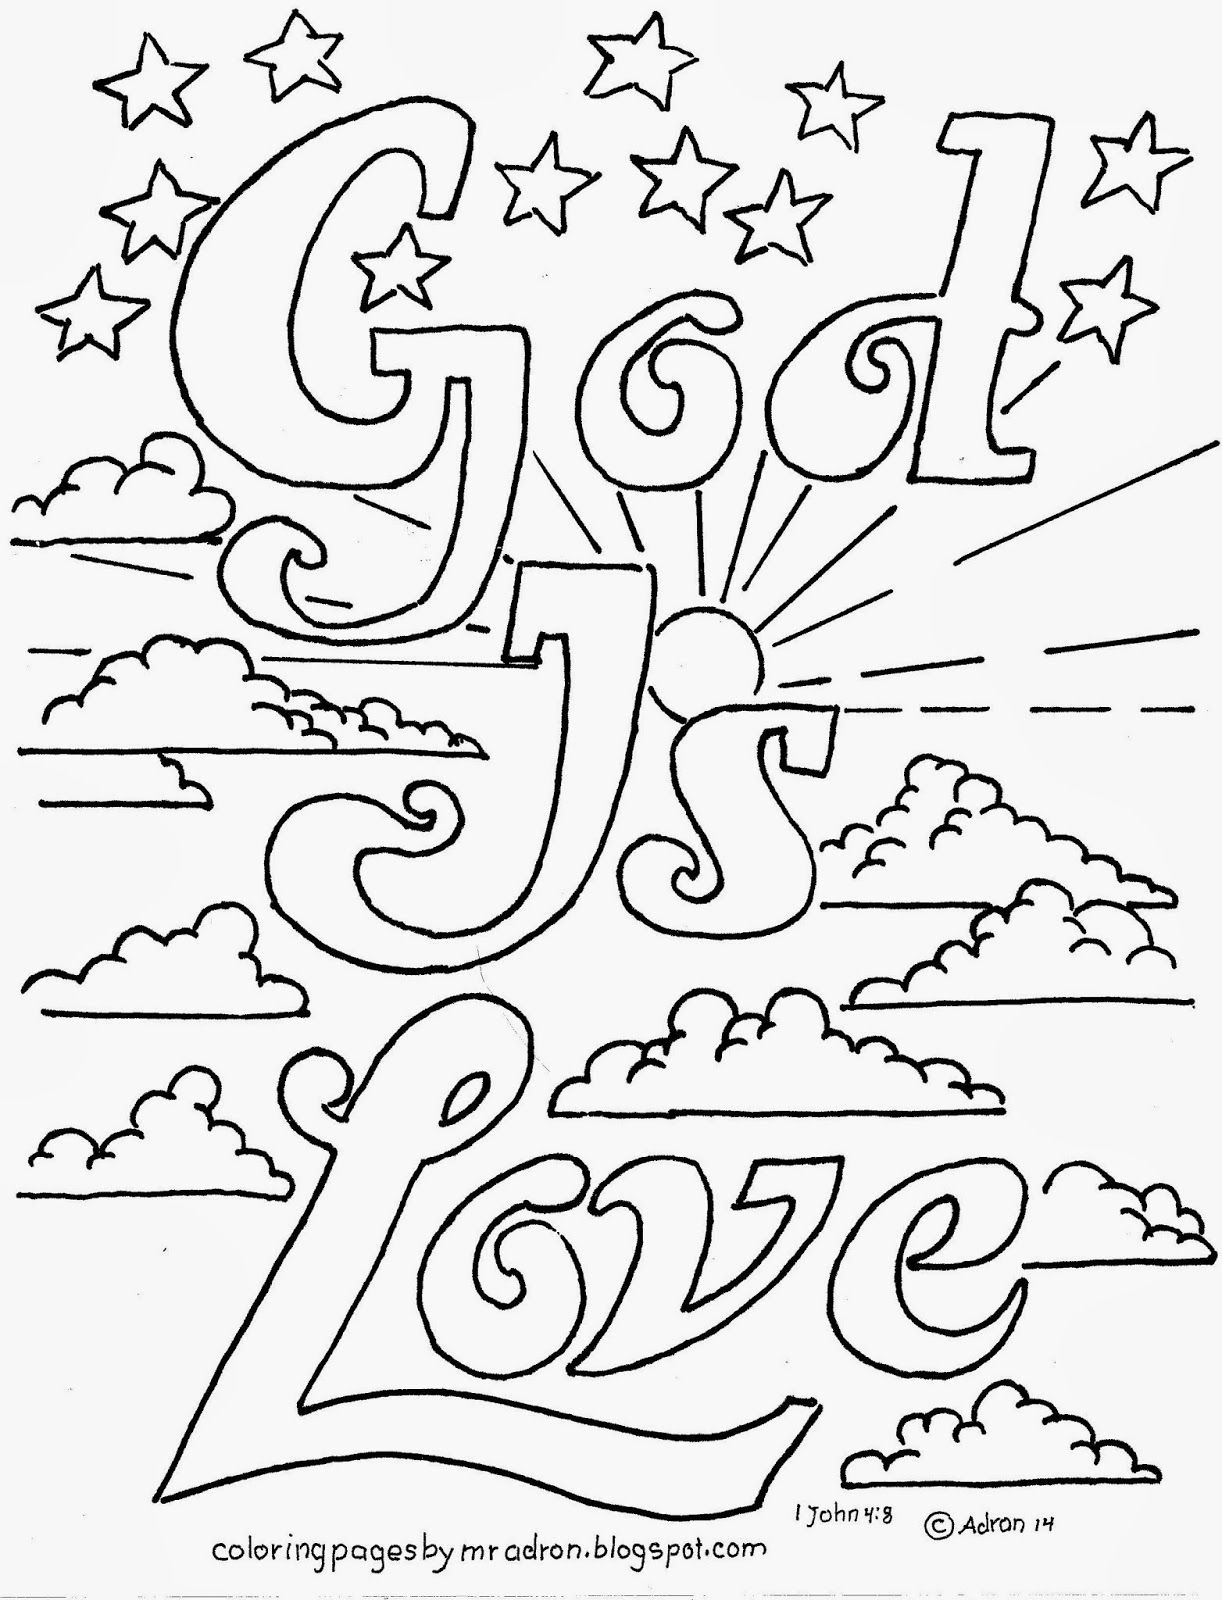 Coloring Pages For Kids By Mr Adron Is Love Printable Kid S Page 1 John 4 8